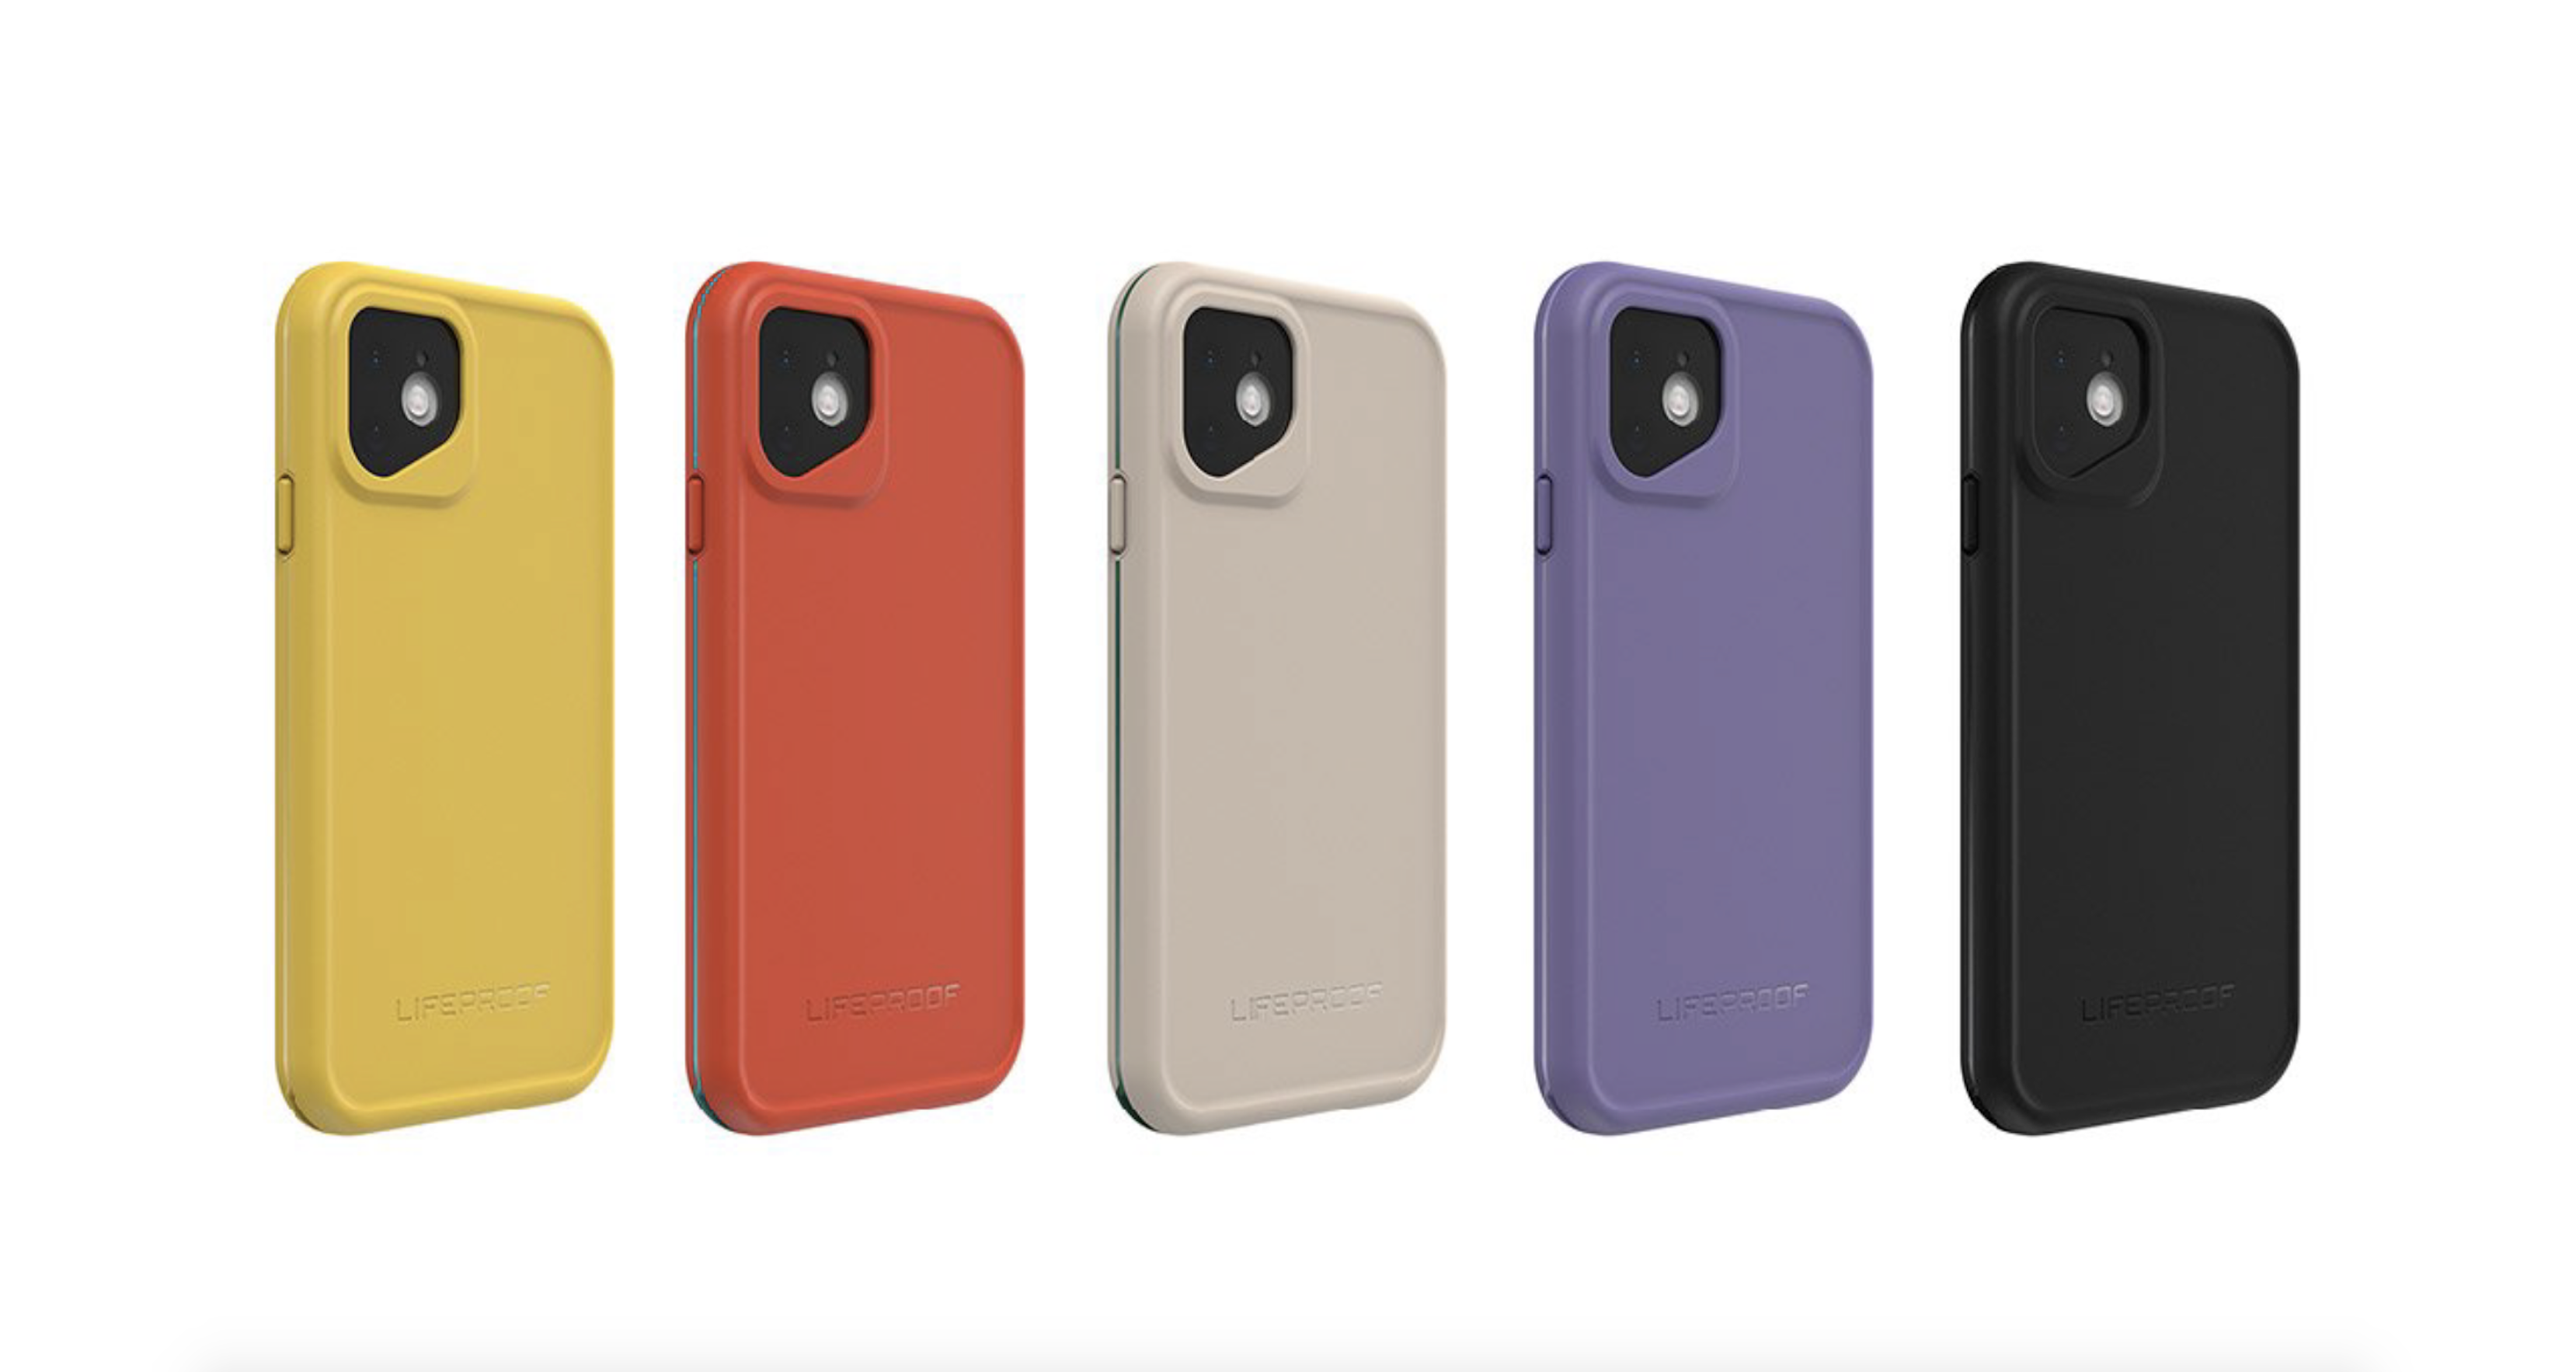 LifeProof waterproof iPhone 11 case colors